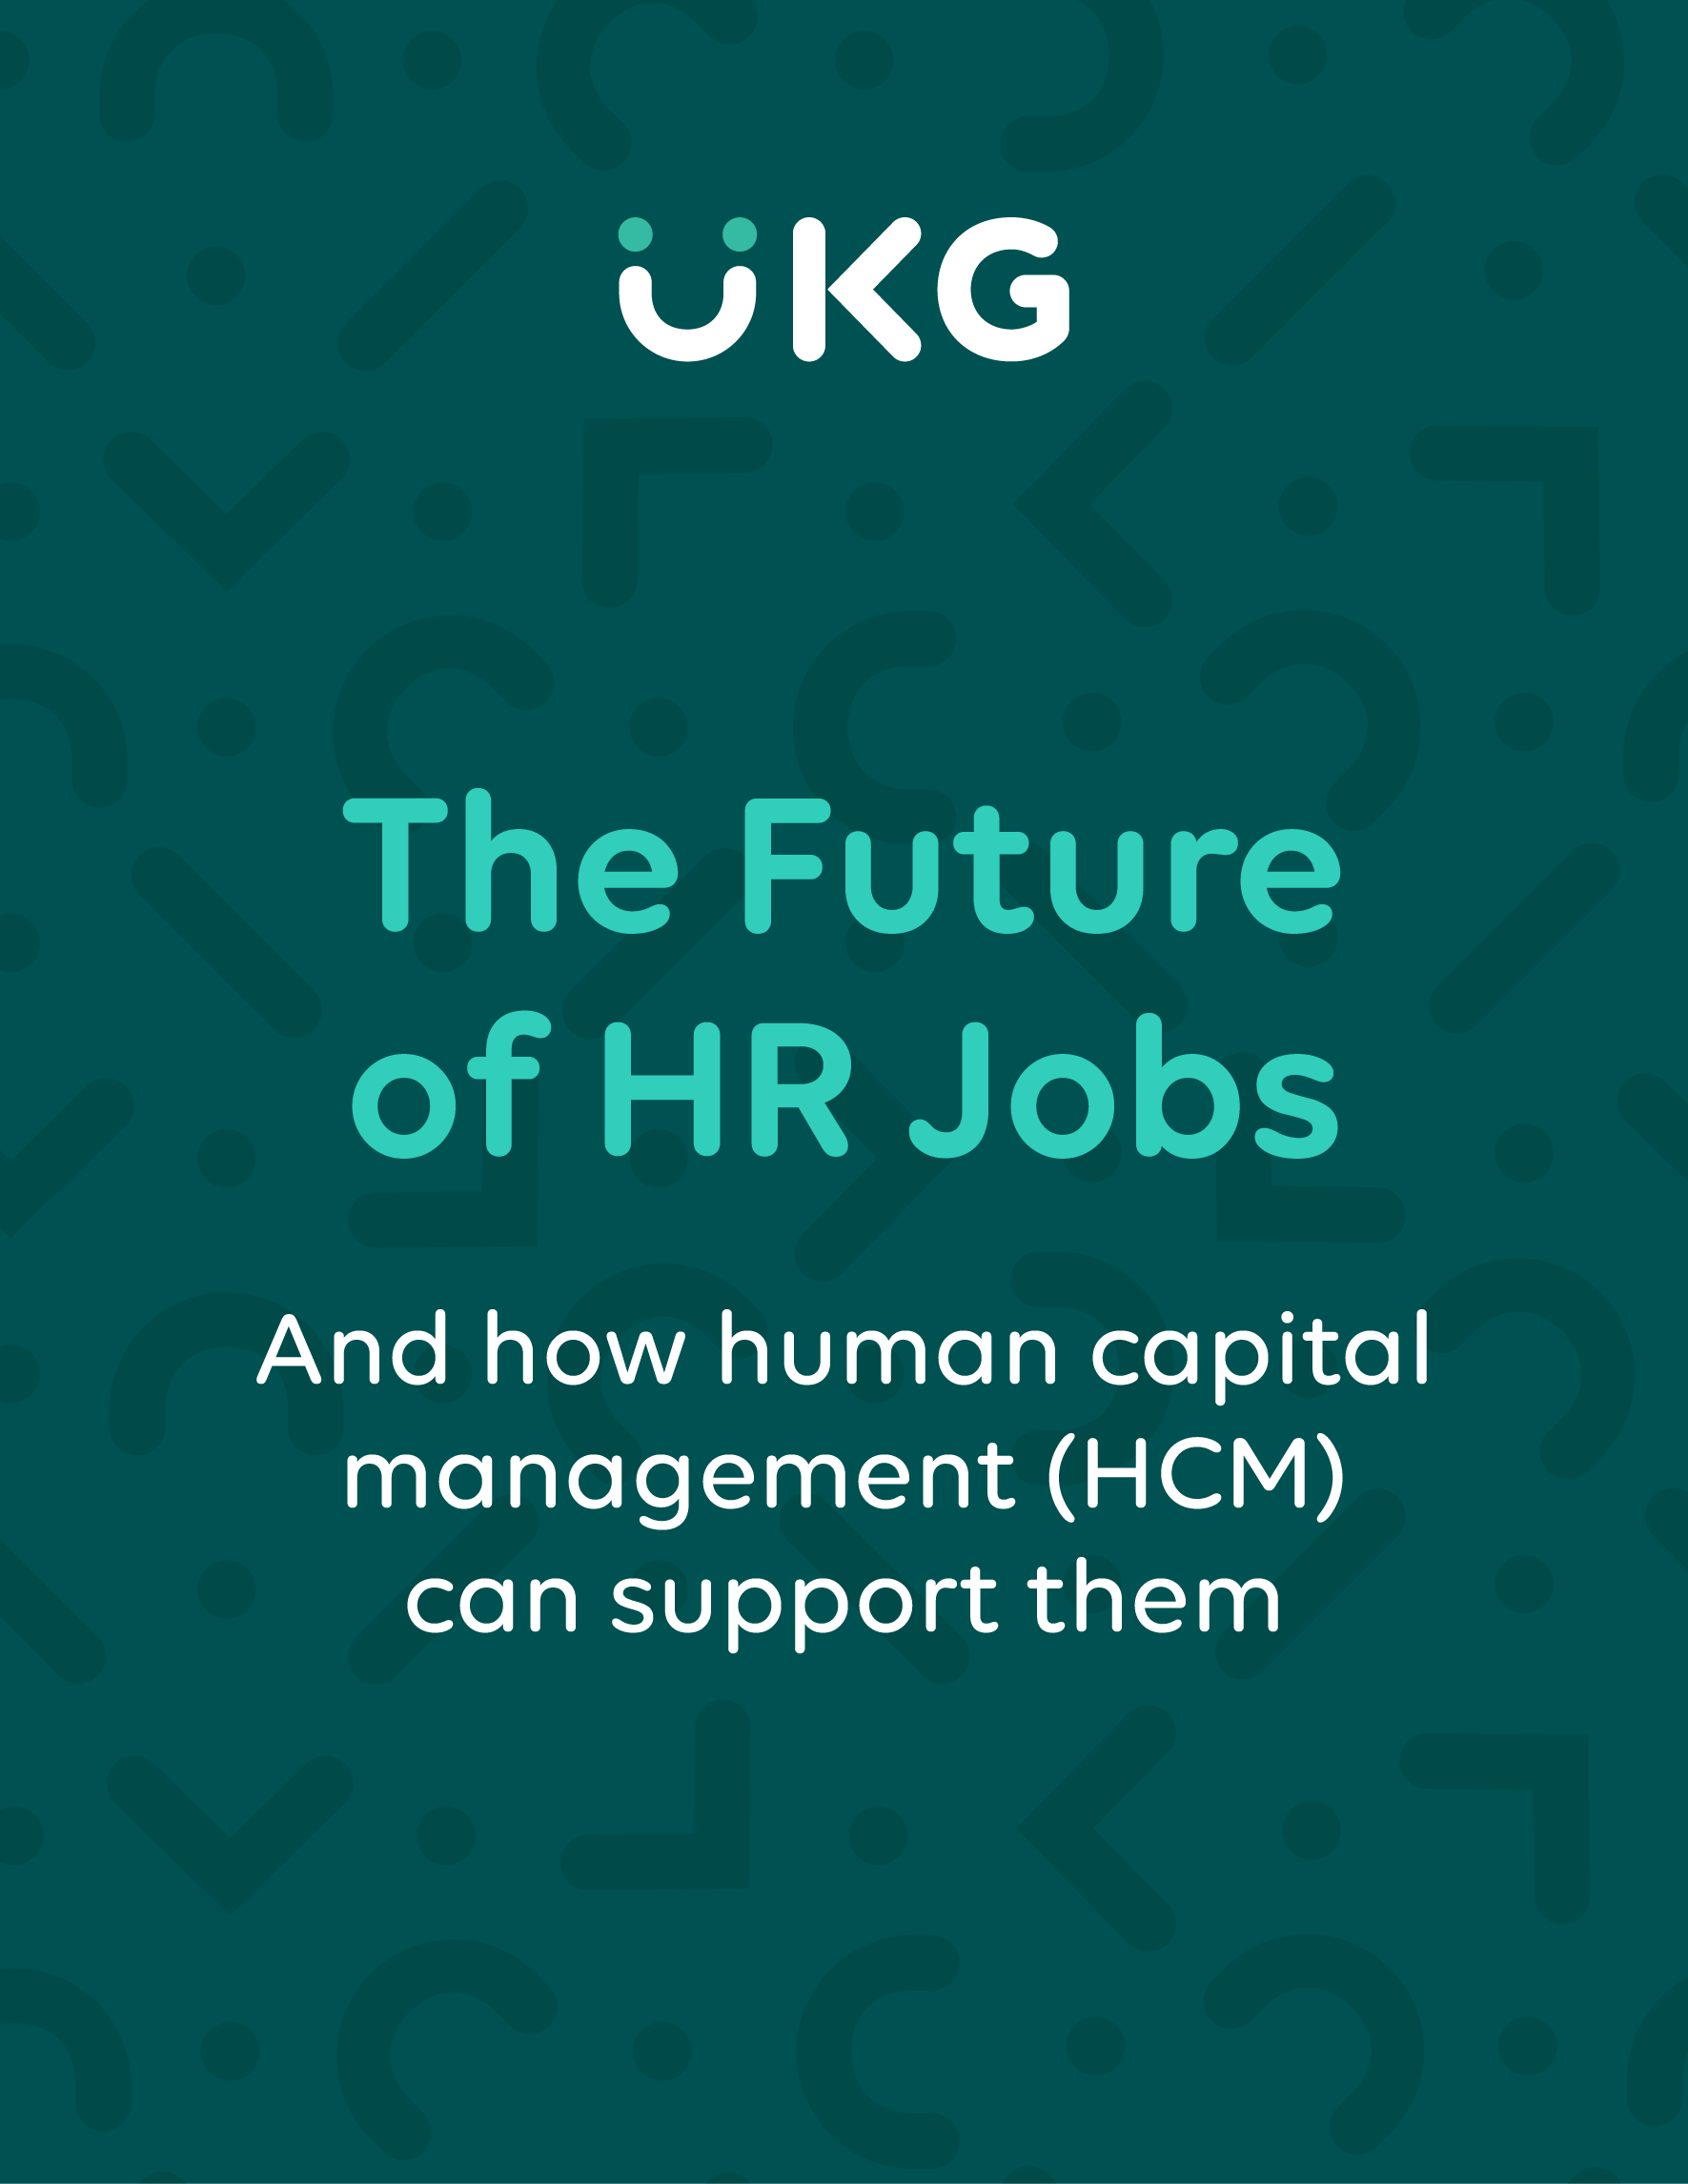 The Future of HR Jobs